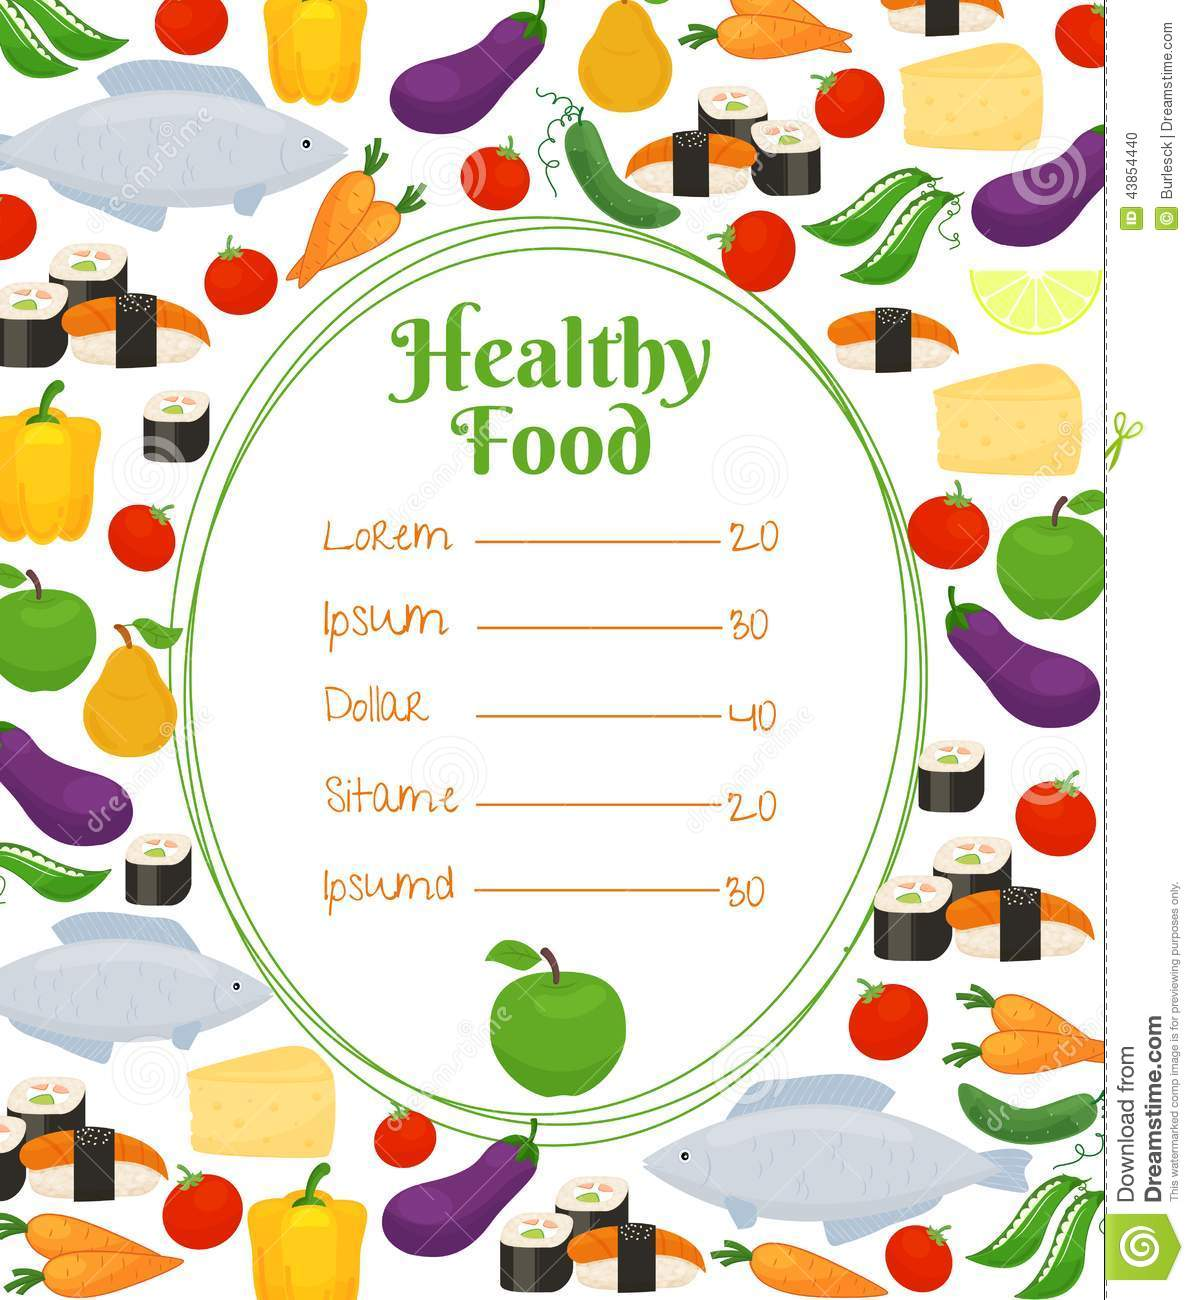 Healthy food menu template stock vector illustration of for Healthiest fish list